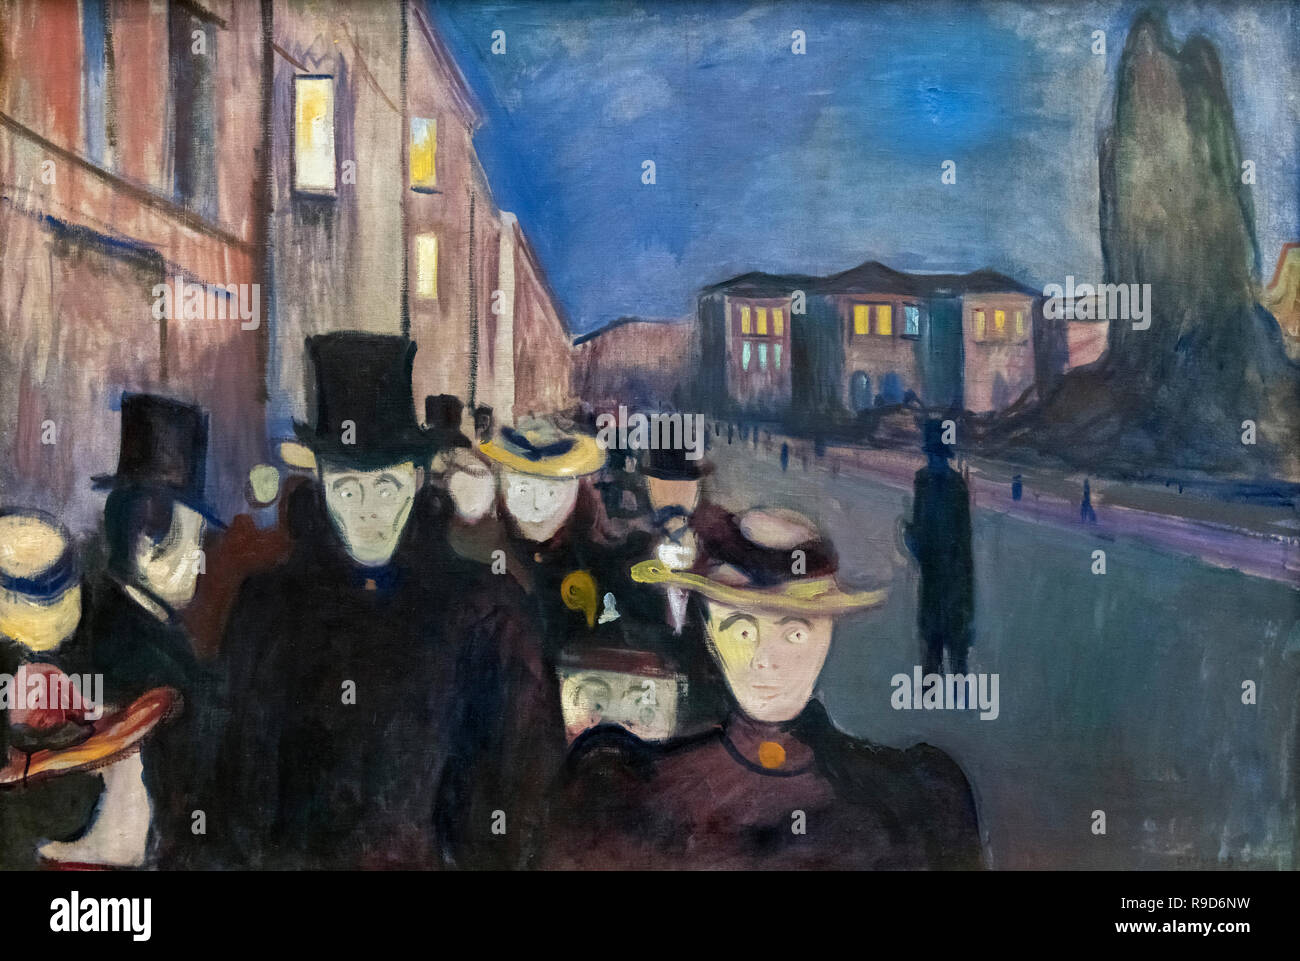 Evening on Karl Johan by Edvard Munch (1863-1944), oil on canvas, 1892 - Stock Image